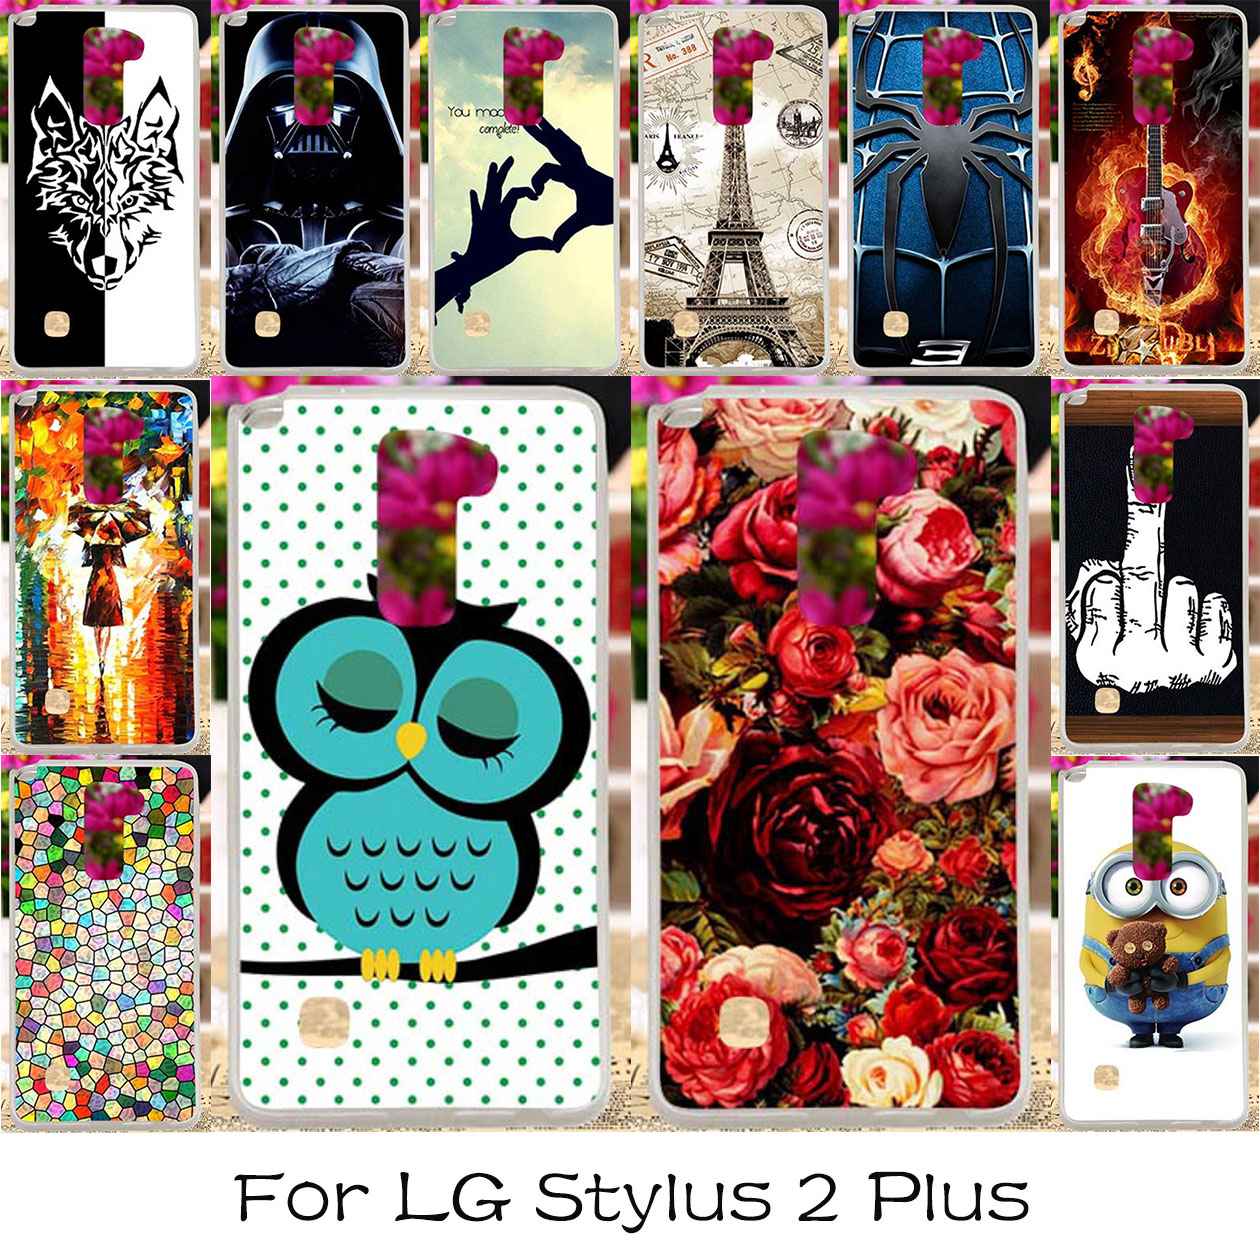 TAOYUNXI Silicon Plastic Phone Cover Case For LG Stylus 2 Plus F720 LS775 K530 K535 G Stylo 2 K520 Stylus2 Stylus Covers Shell